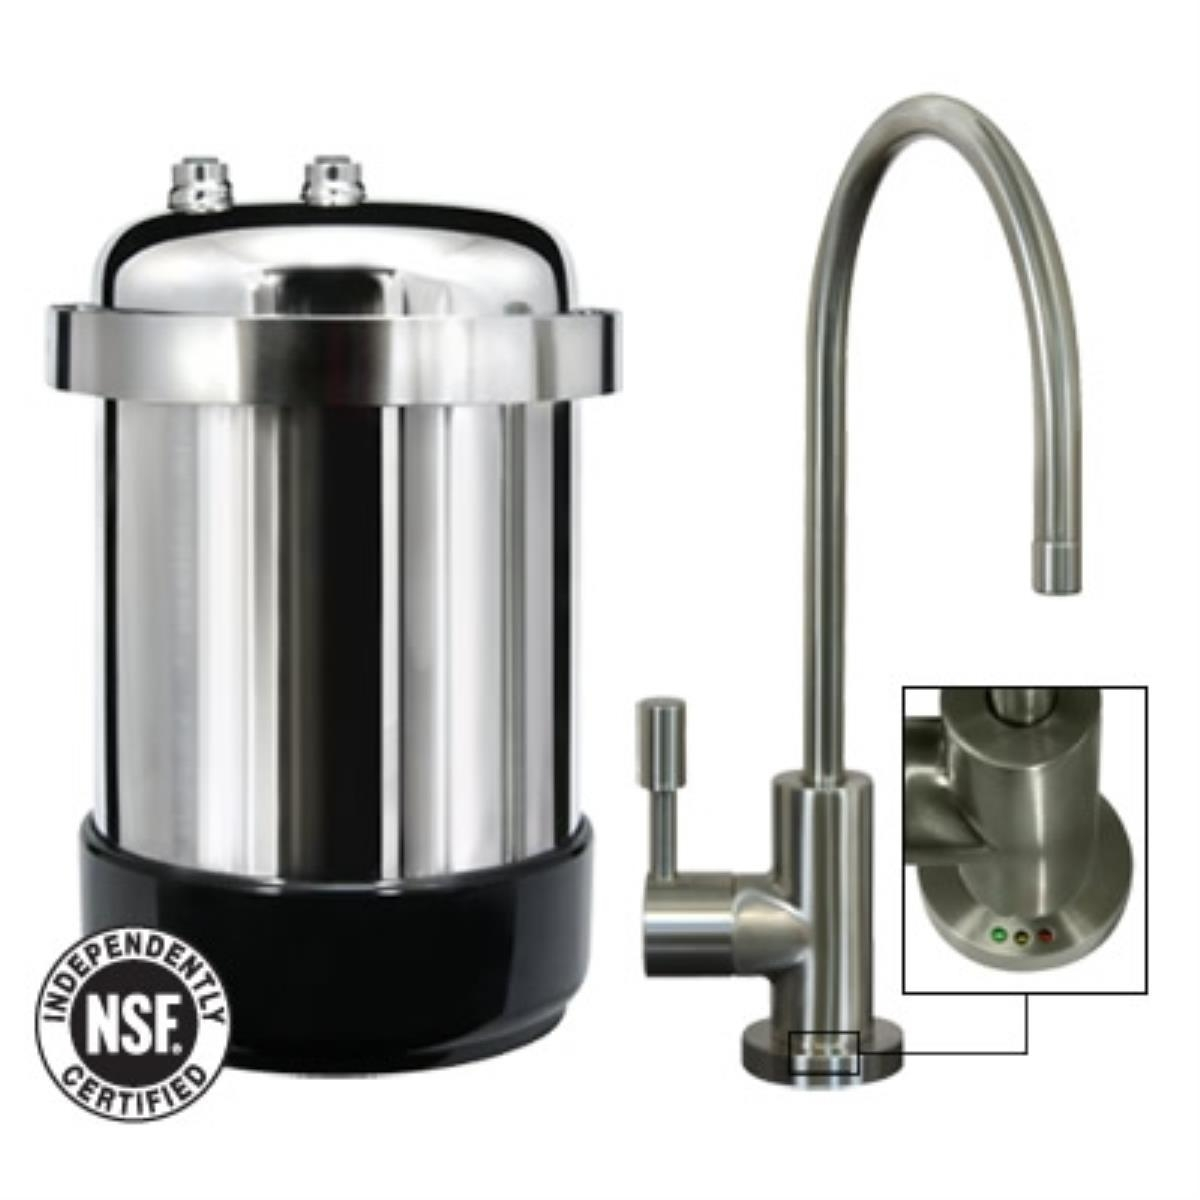 Ideas, best under cabinet water filter system water filter ideas for sizing 1200 x 1200  .